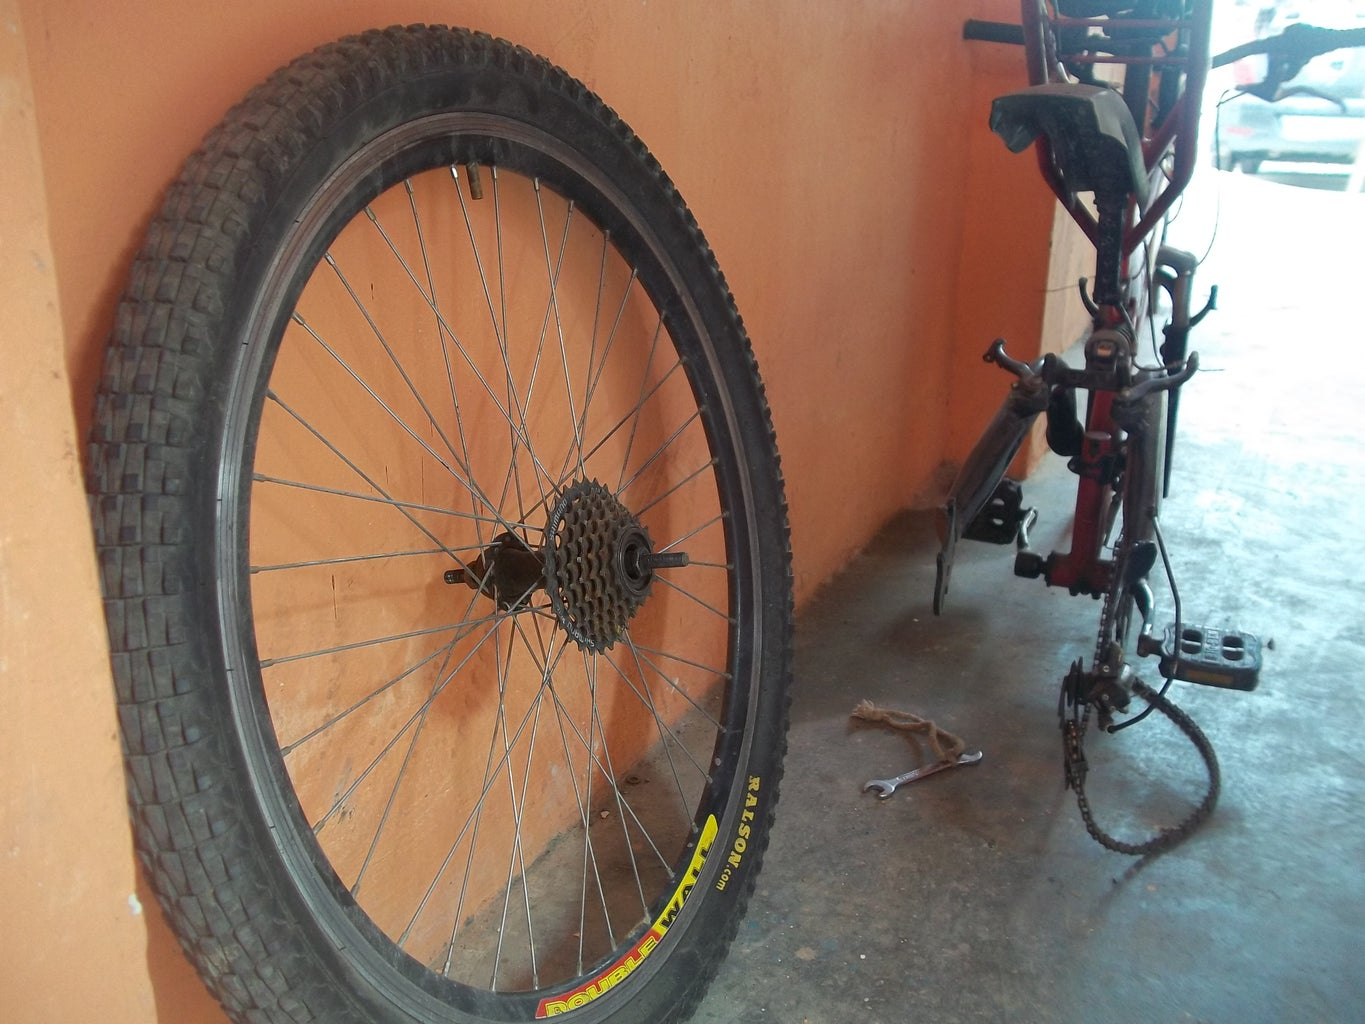 Repainting Old Bicycle Tire